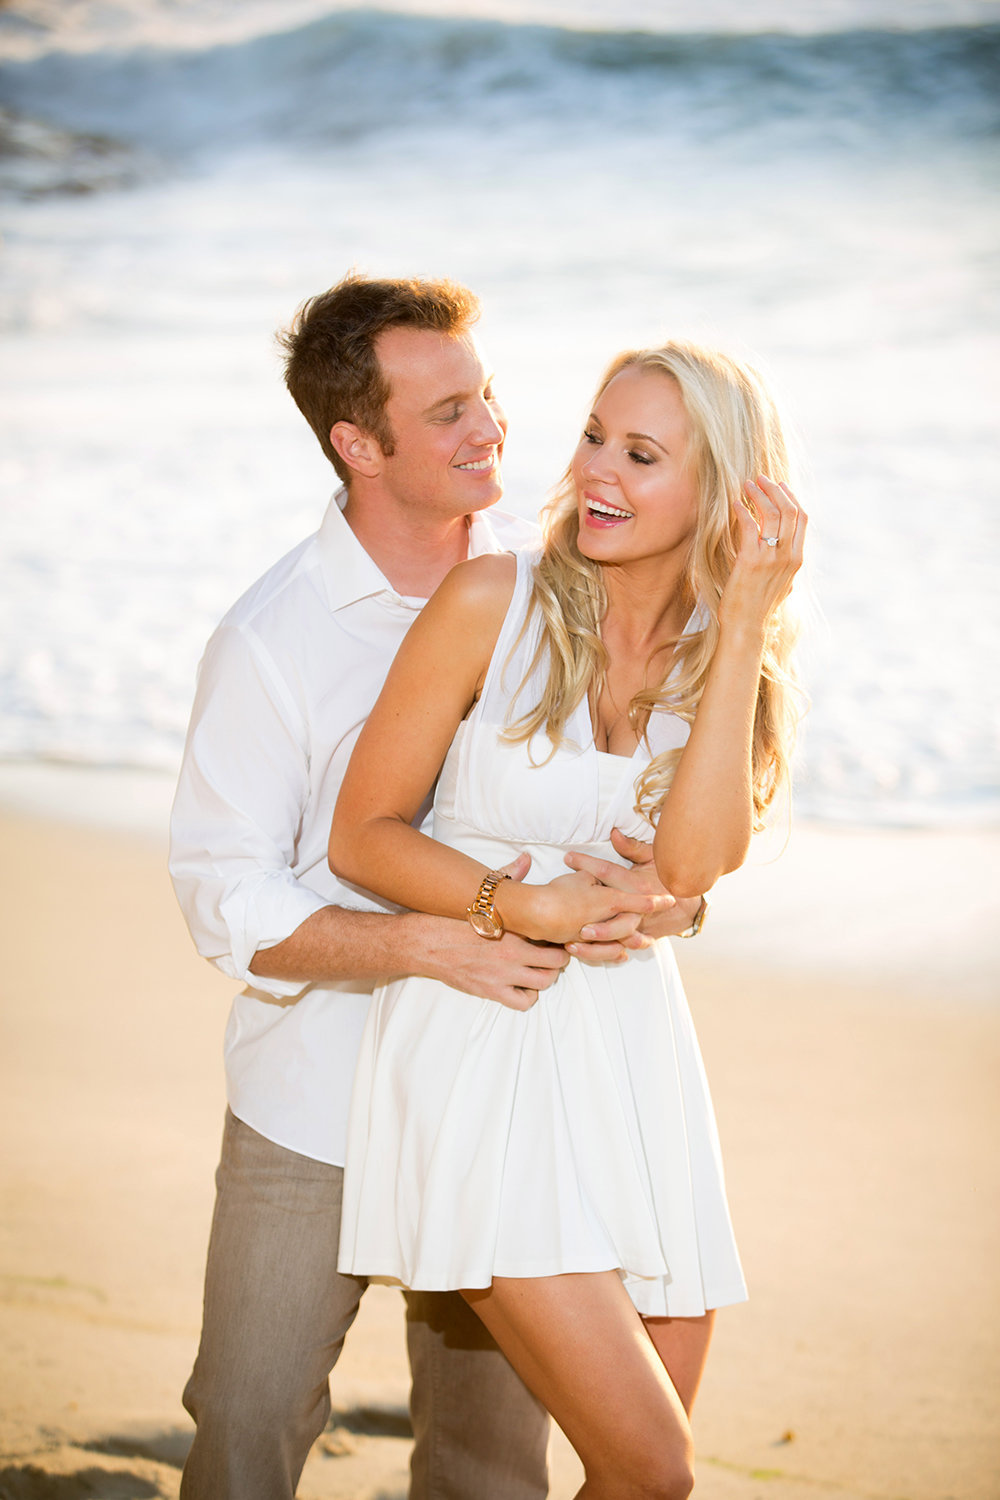 La Jolla engagement photos beach shoot with ocean